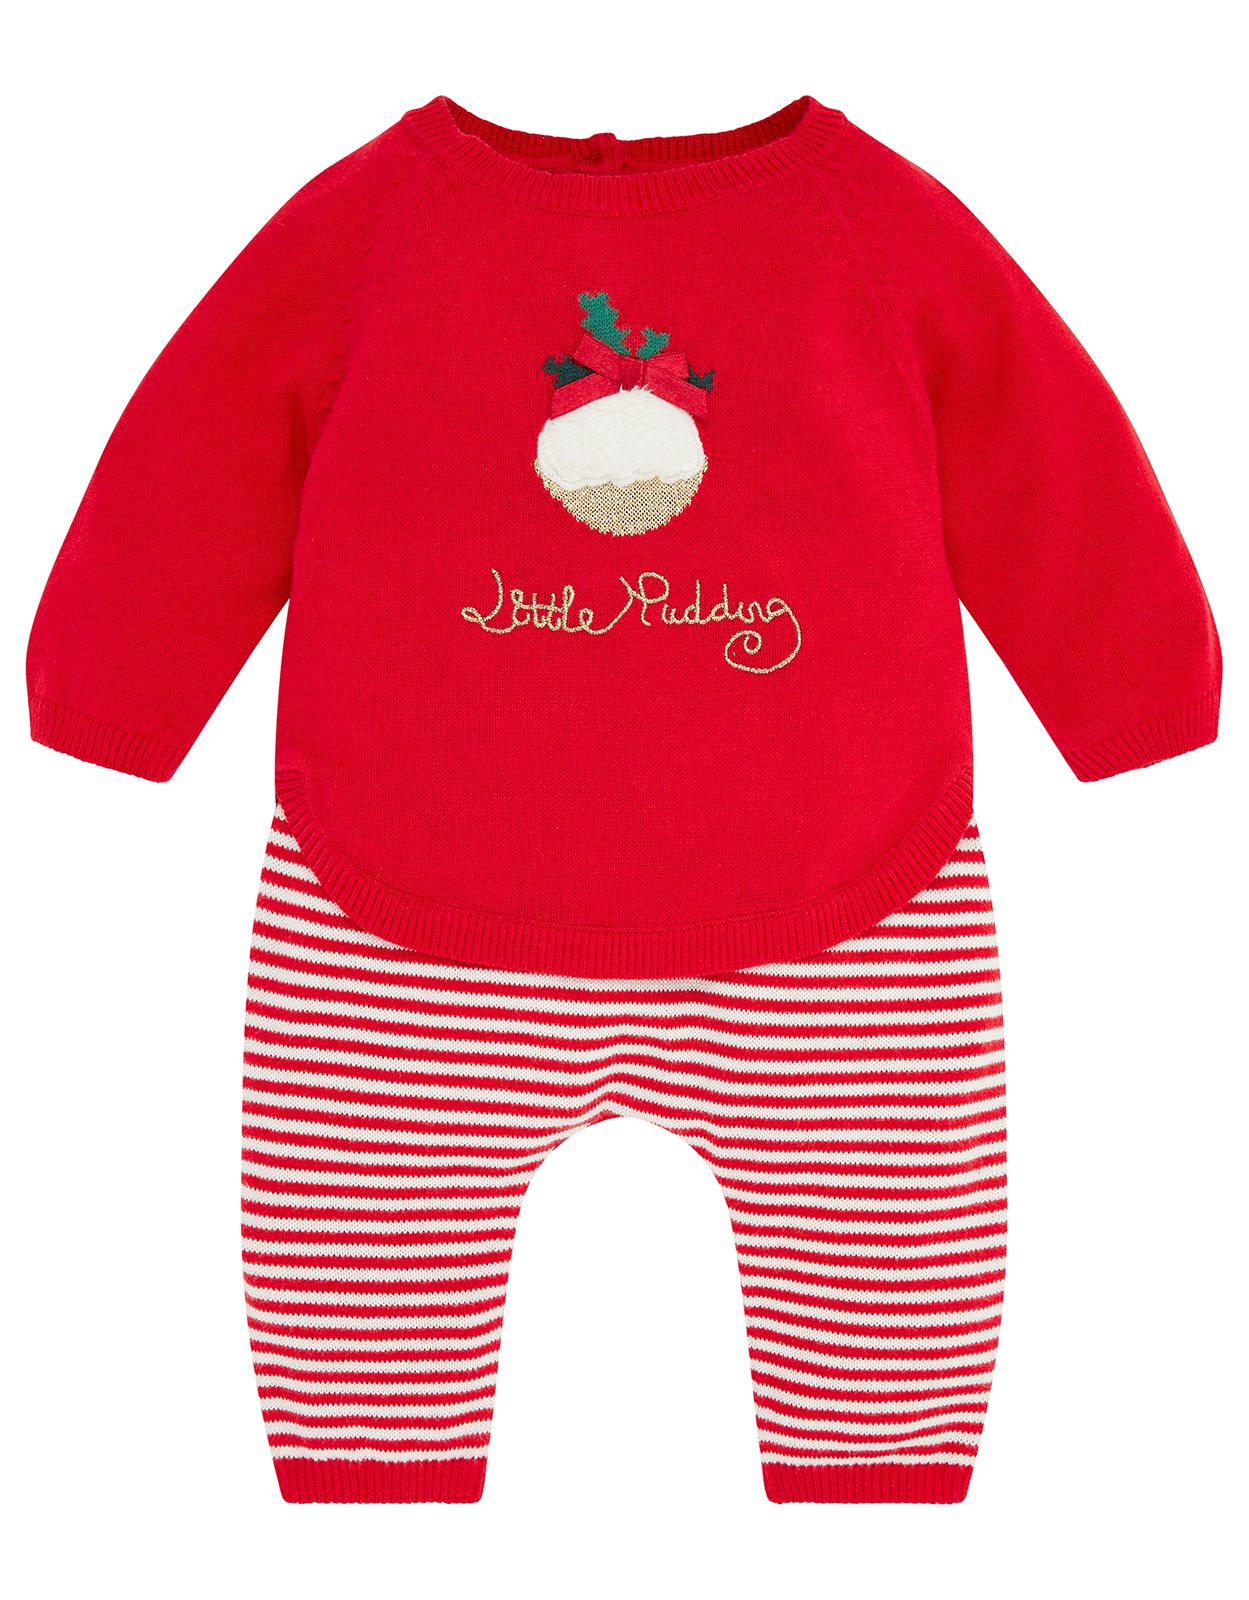 Monsoon NB Baby Little Pudding Knit Set